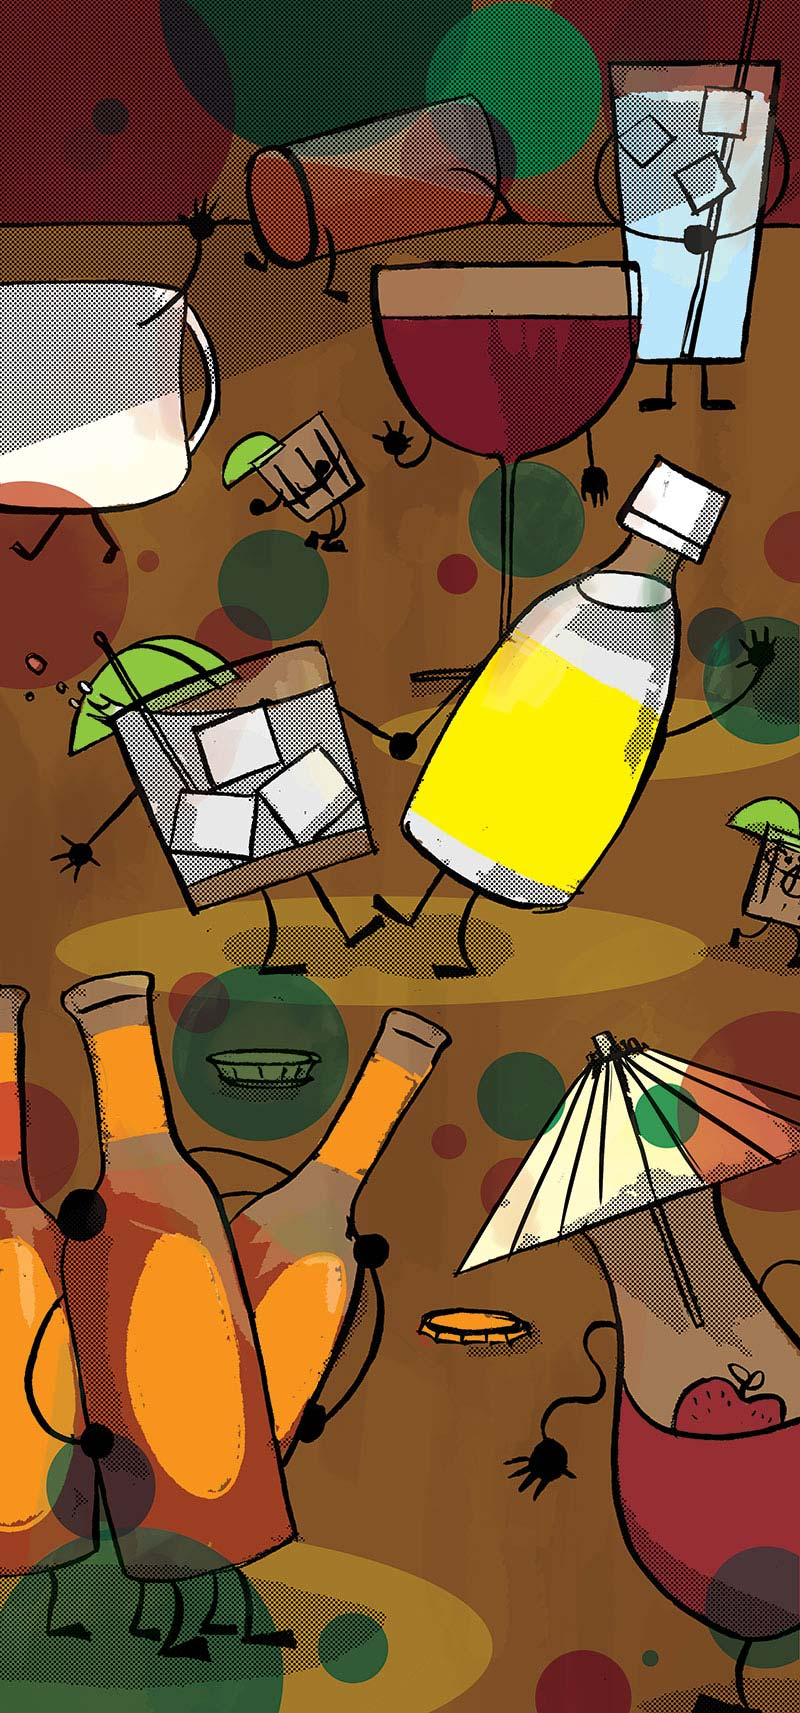 Illustration of personified wine glasses, cocktail glasses, and beer bottles having a cocktail party